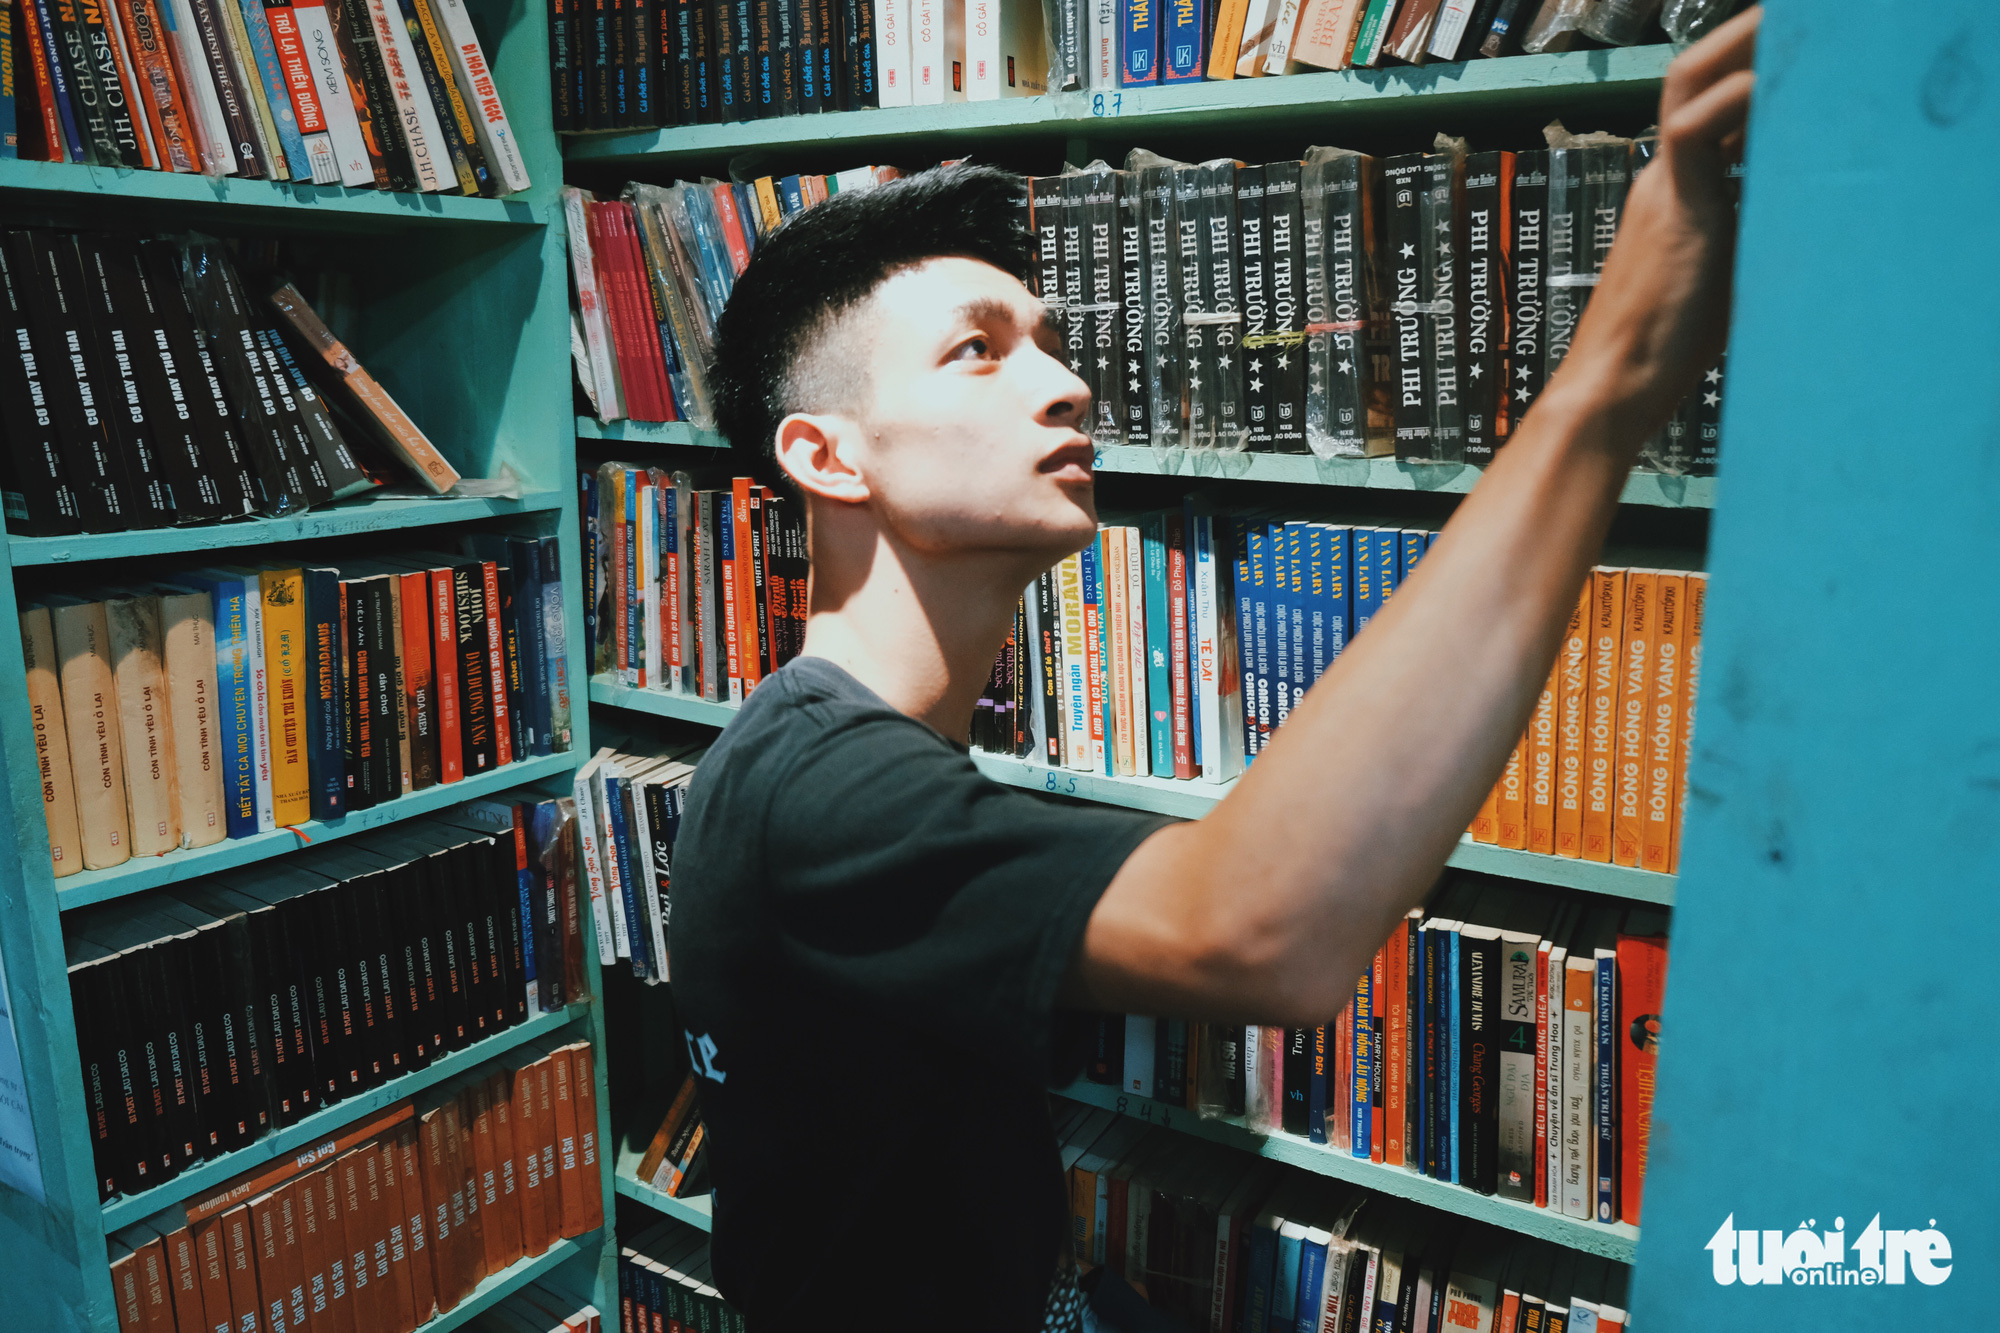 Duc Anh, who comes to a bookstore at No. 5 Dinh Le Street, Hanoi, Vietnam for the first time with his girlfriend, looks at books on a bookshelf. Photo: Song La / Tuoi Tre